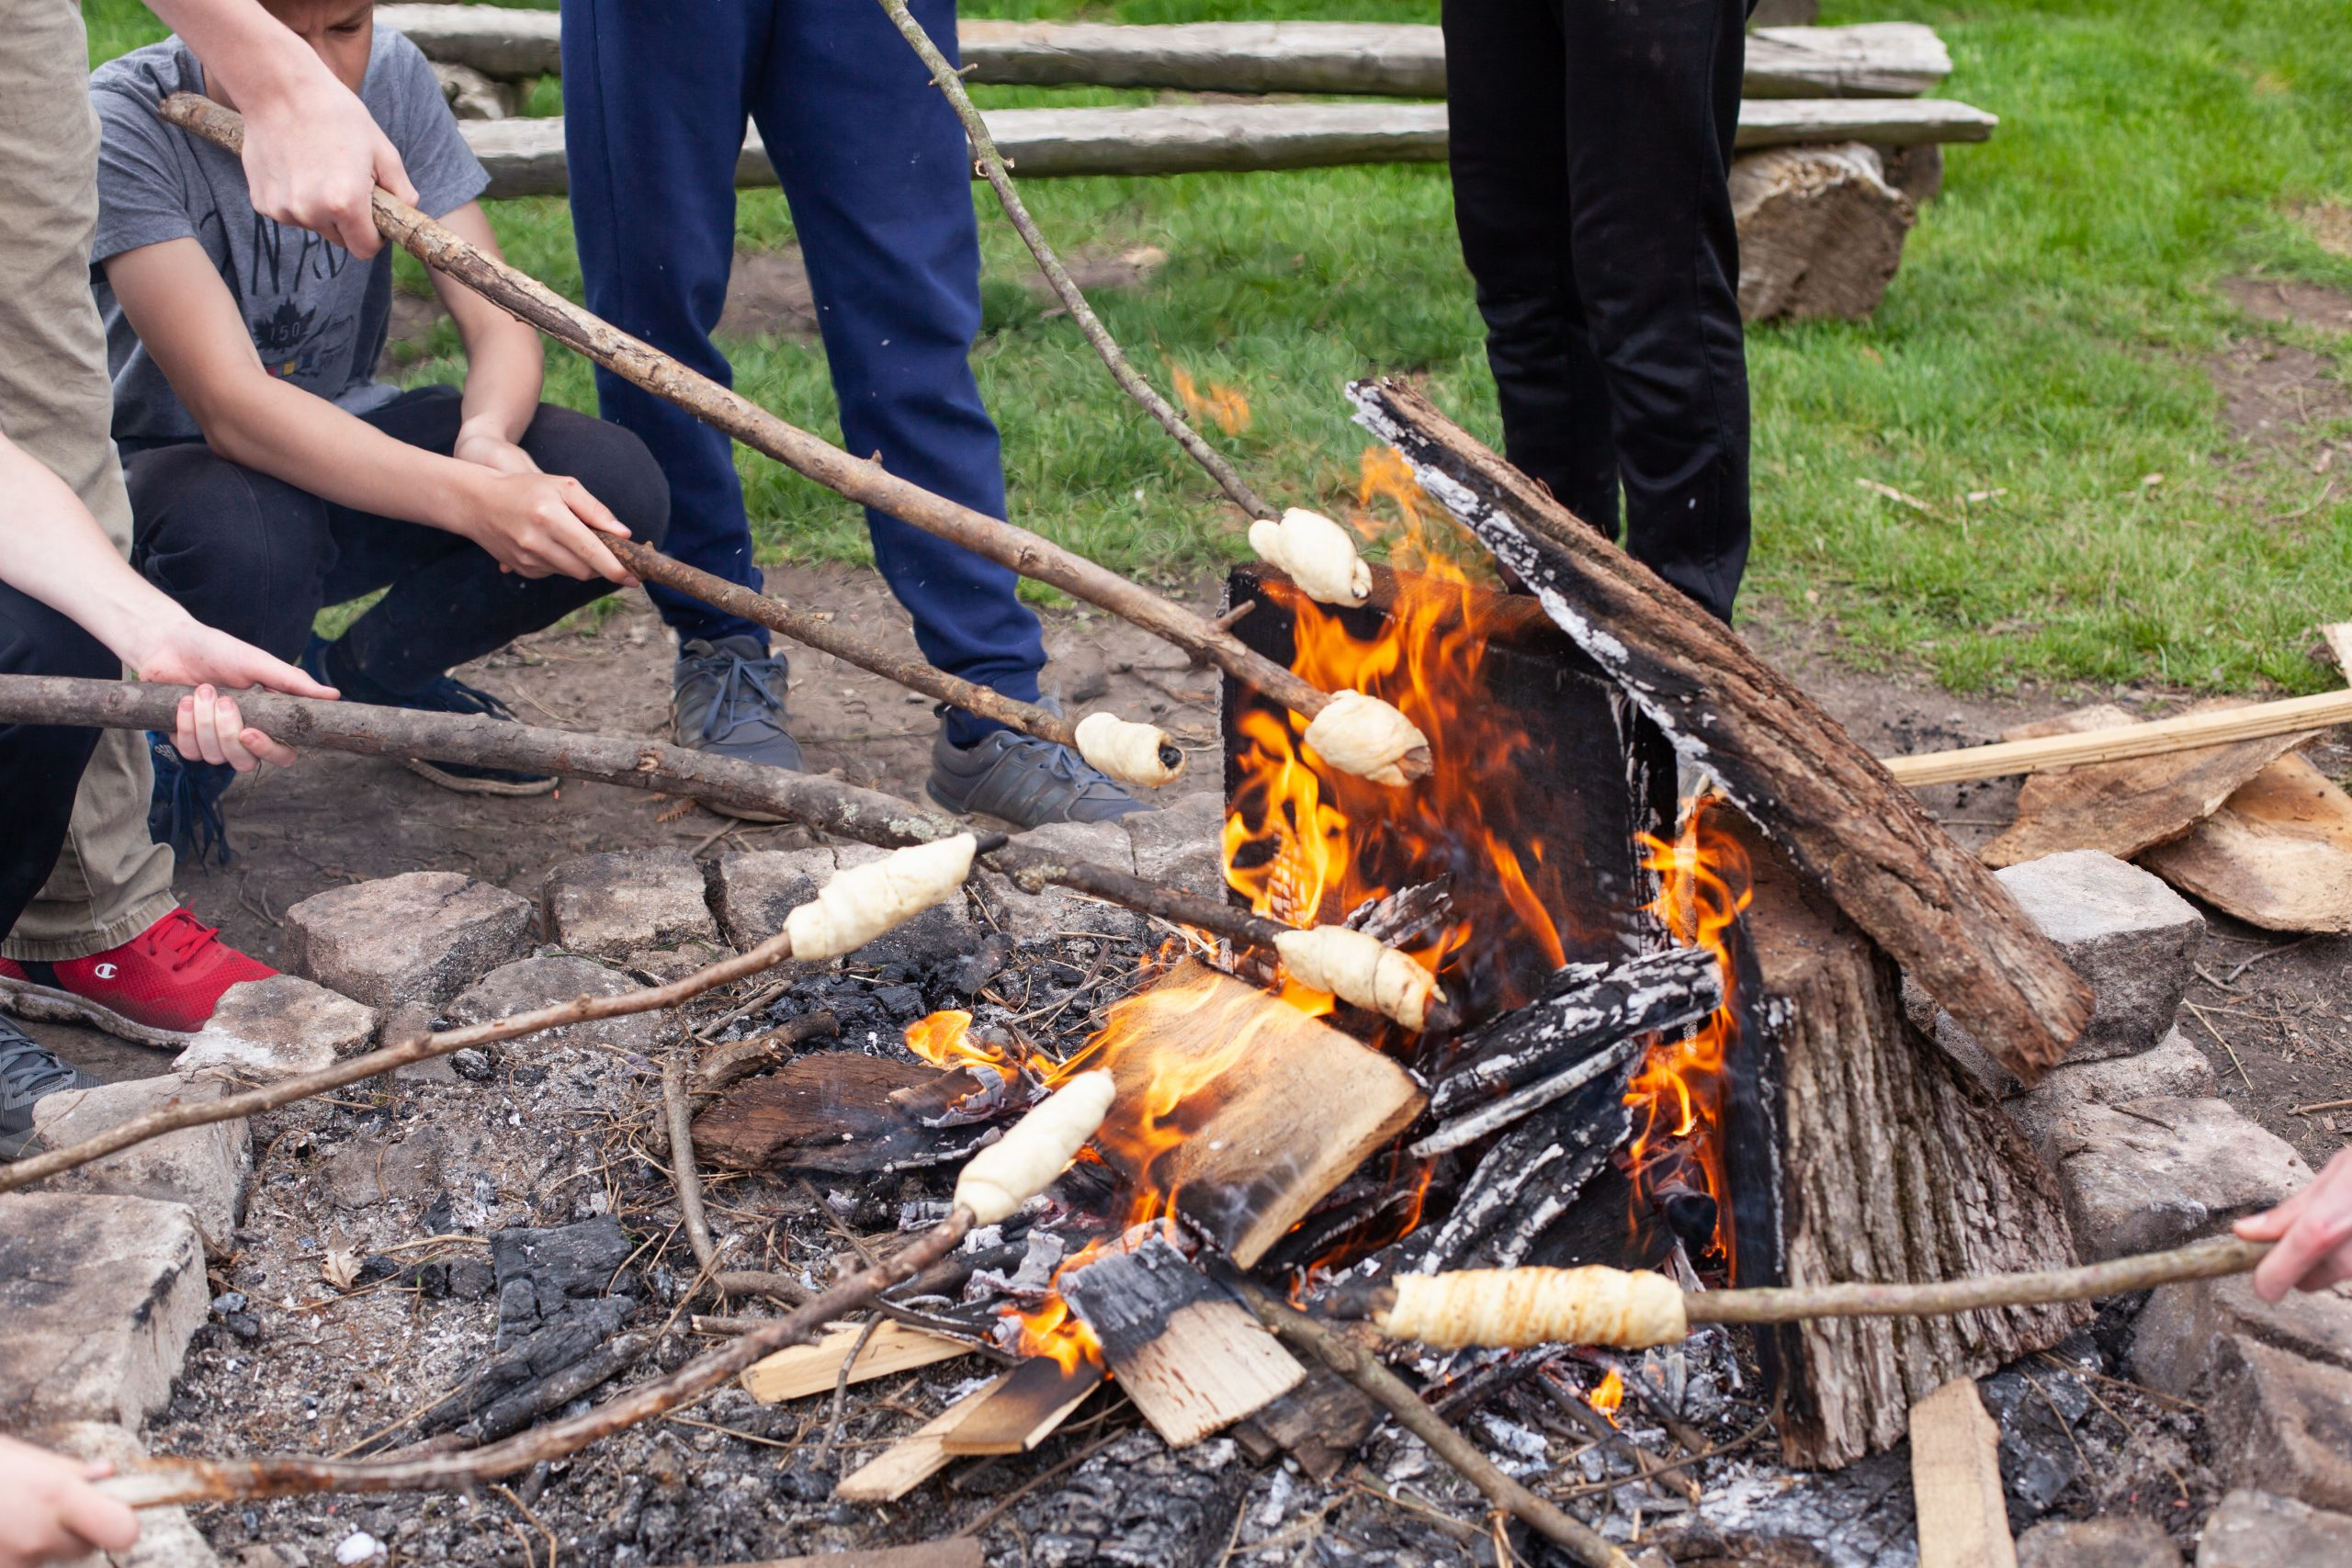 Campers standing around a campfire roasting marshmallows on the end of a stick at summer camp.